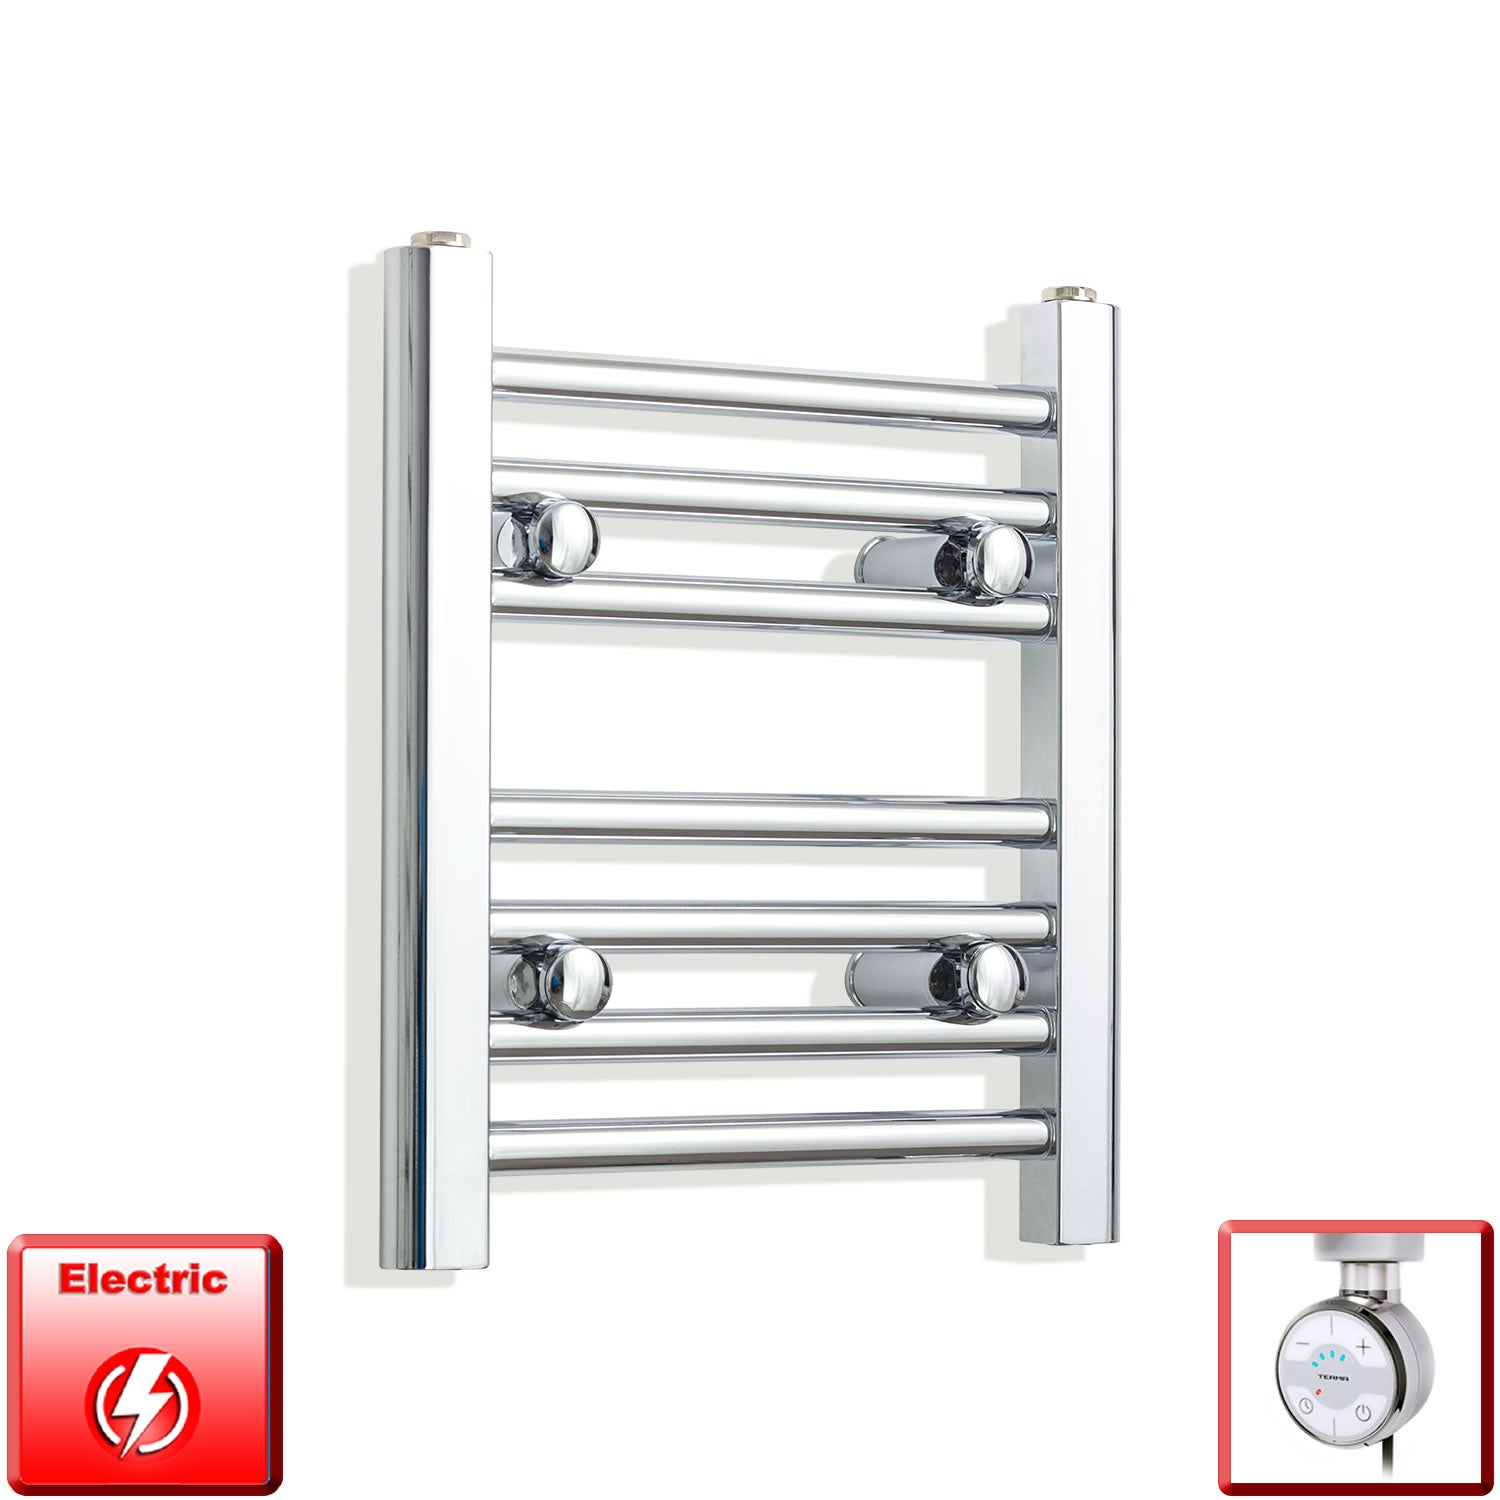 350mm Wide 400mm High Pre-Filled Chrome Electric Towel Rail Radiator With Thermostatic MOA Element